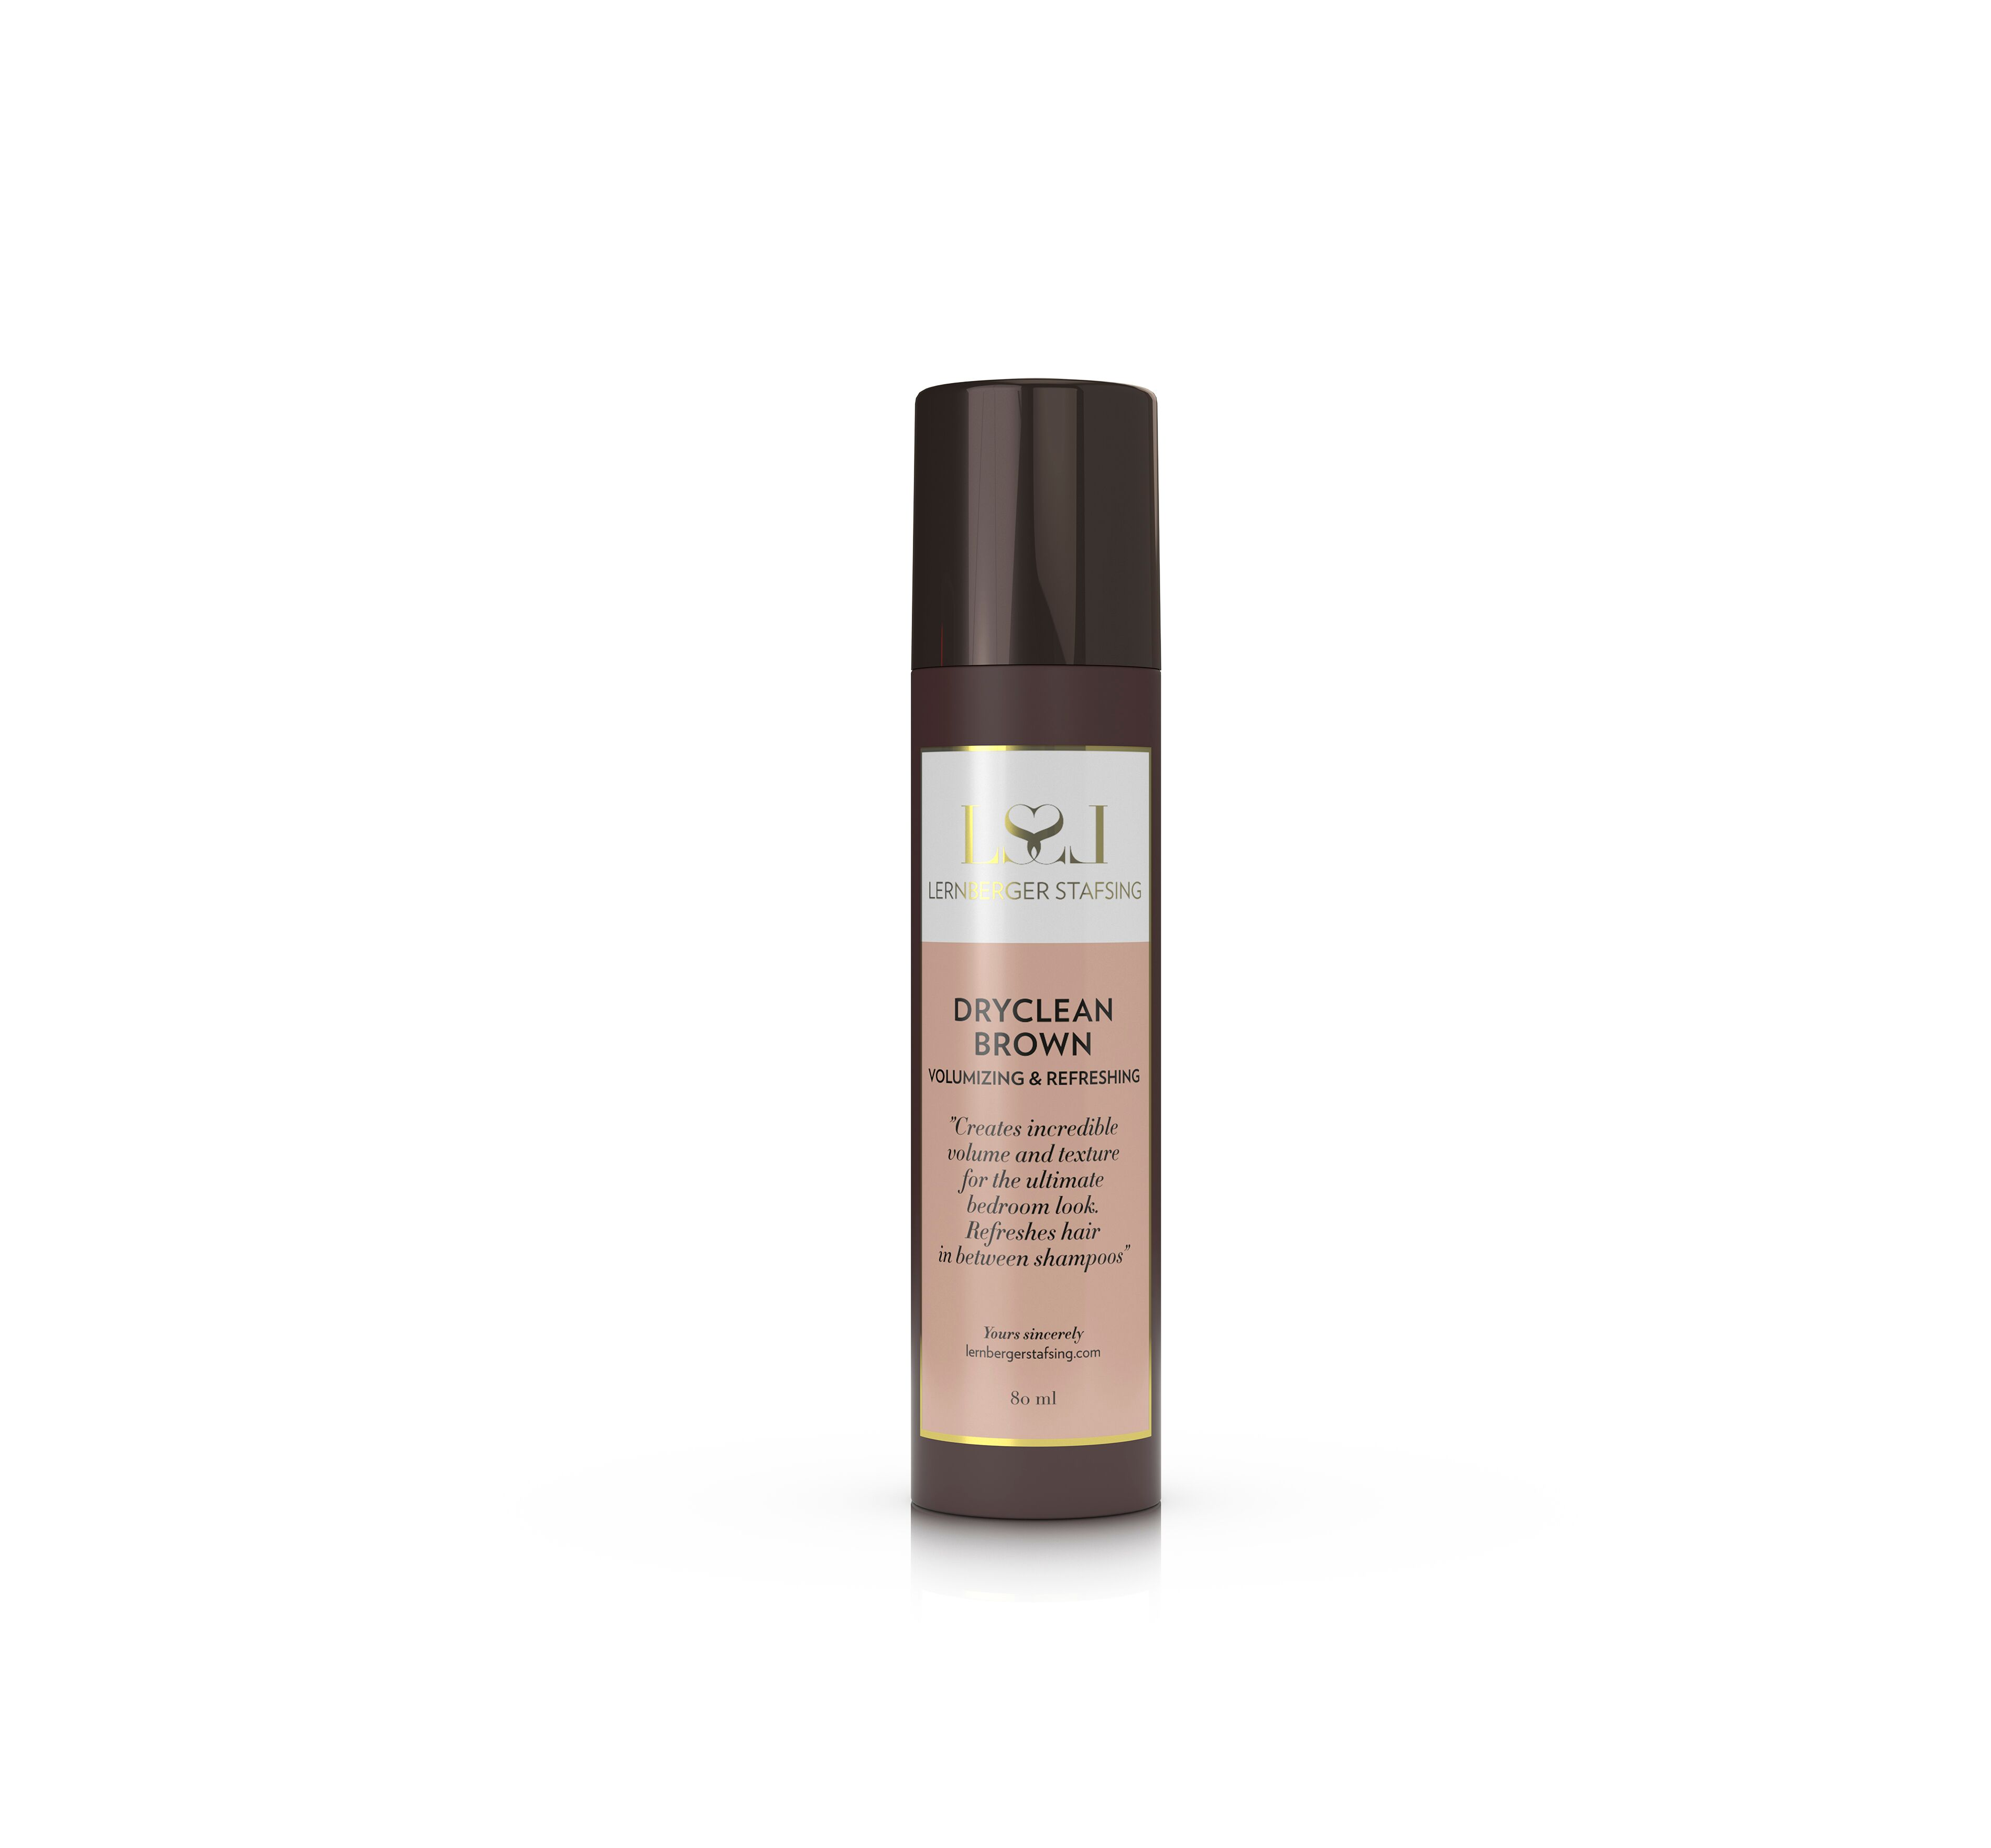 Lernberger Stafsing Brown Dryclean Travel Size, 80 ml